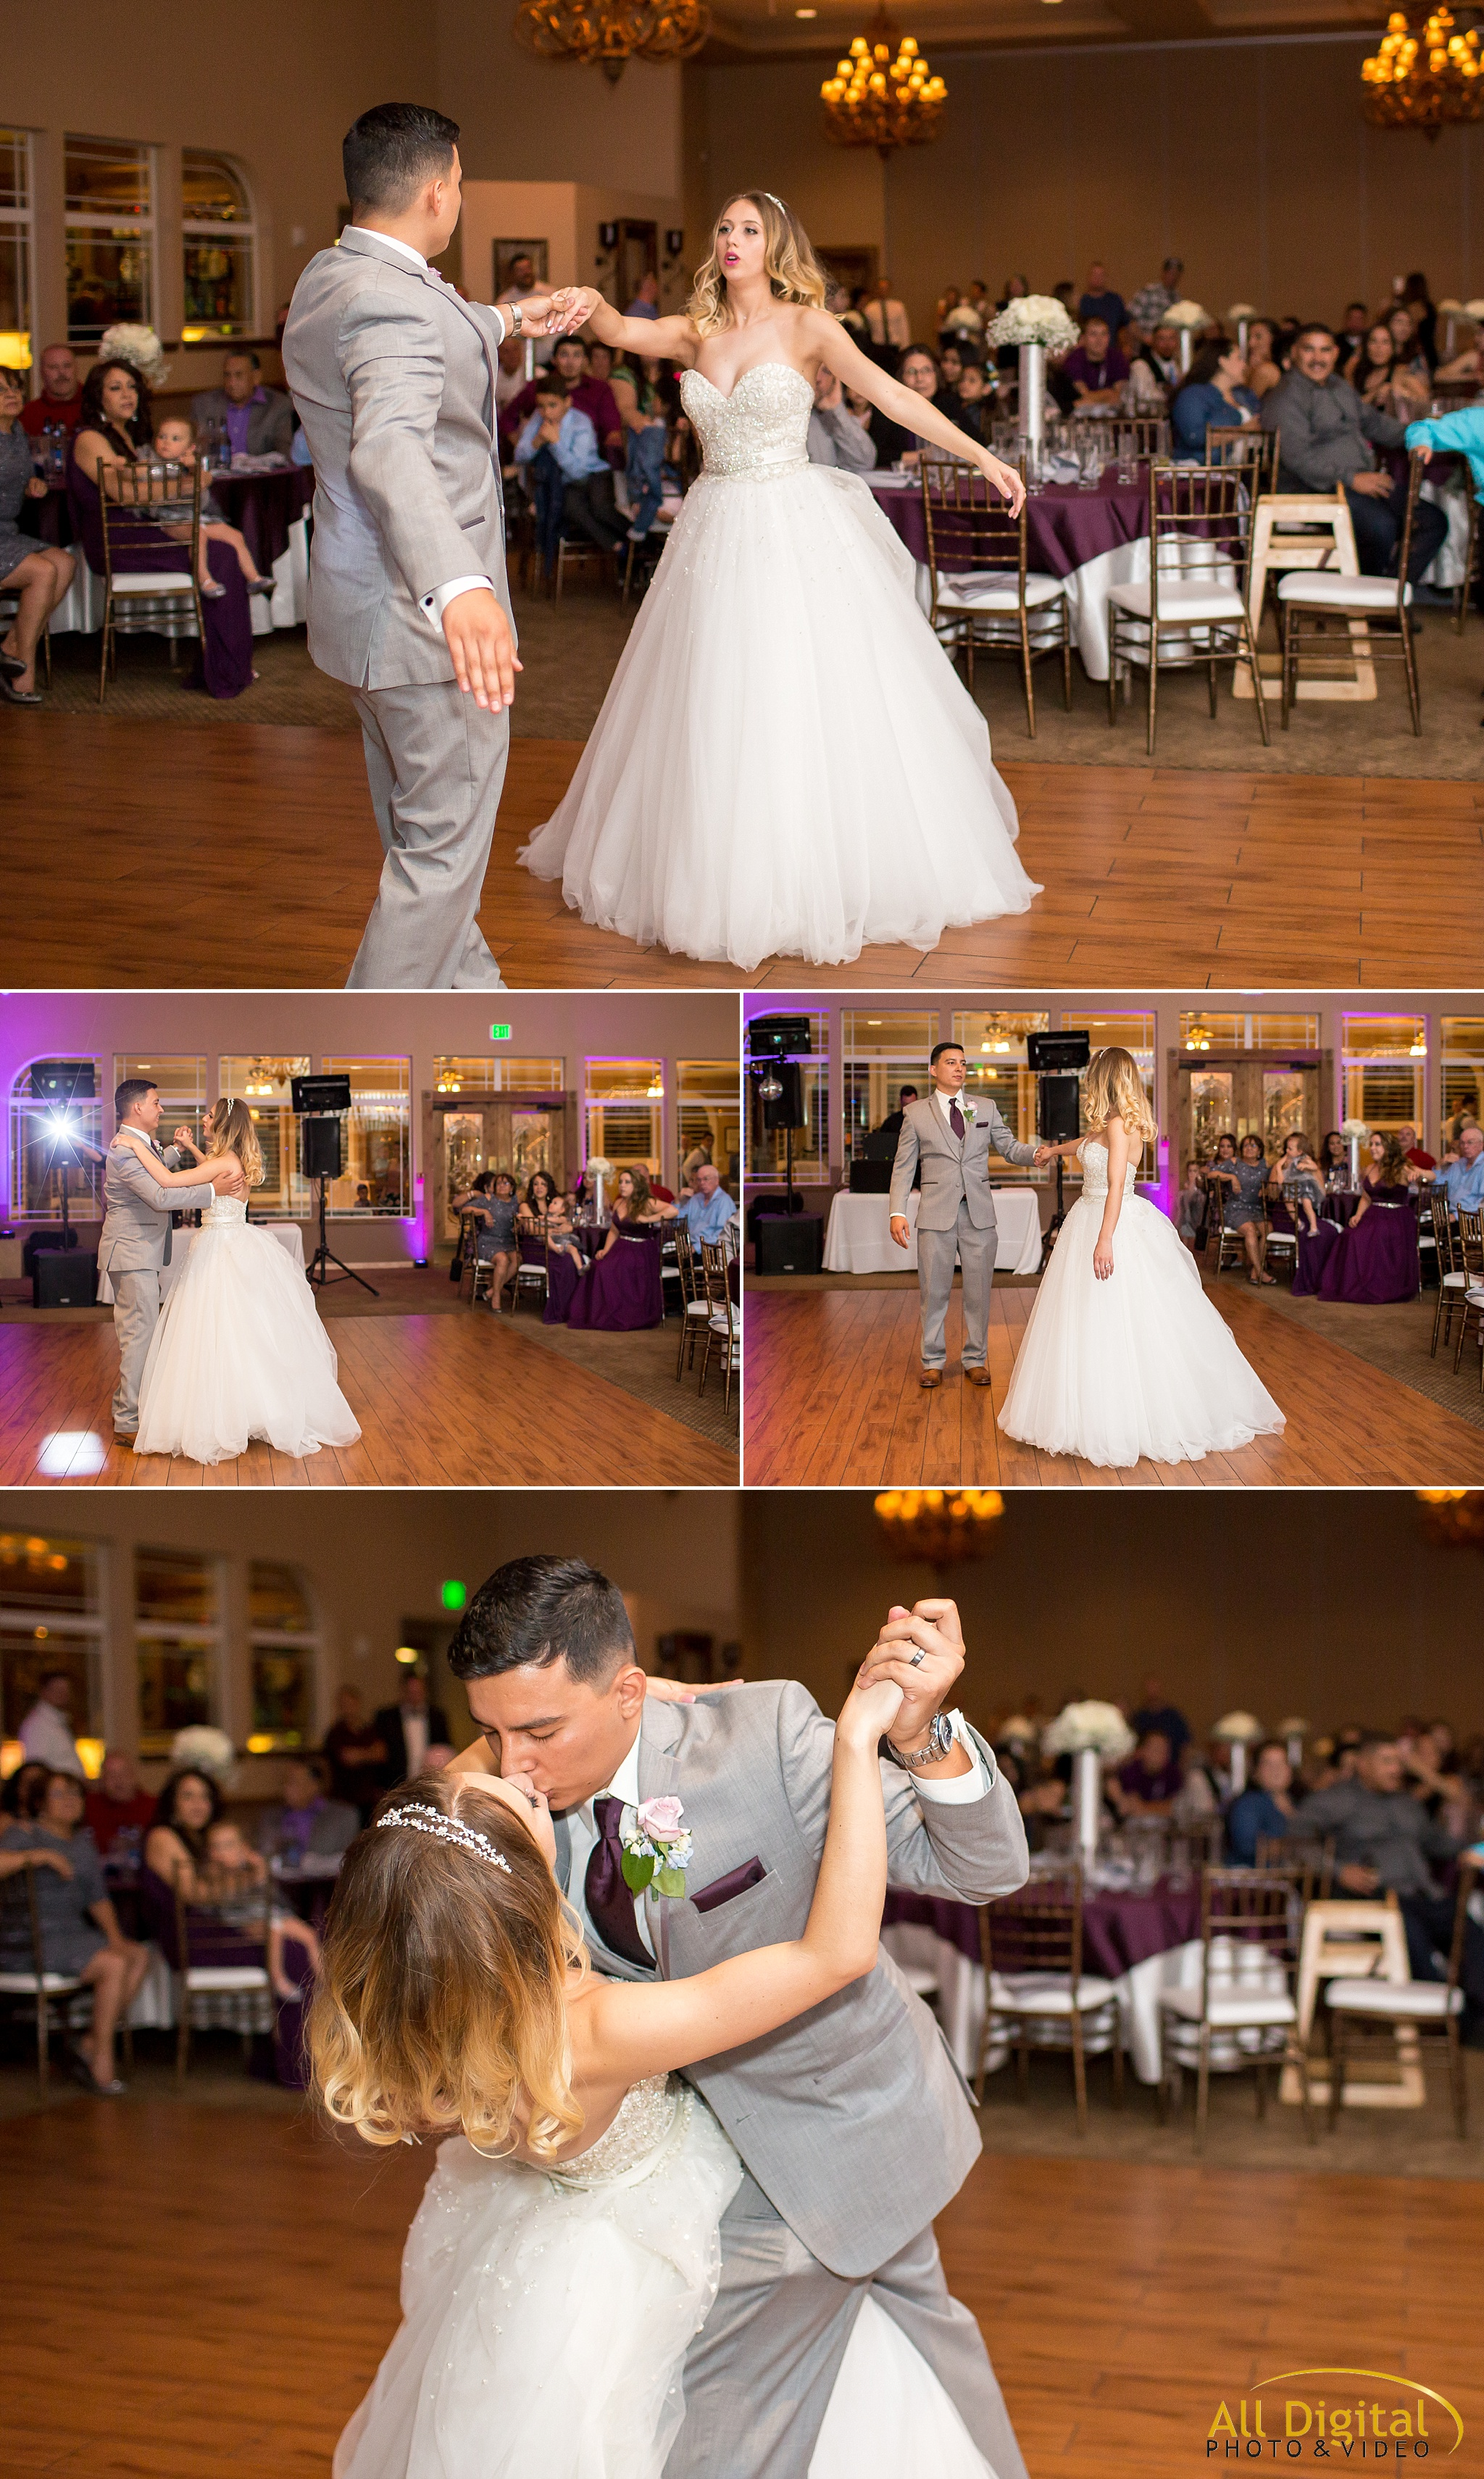 Bride & Groom first dance at Stonebrook Manor.